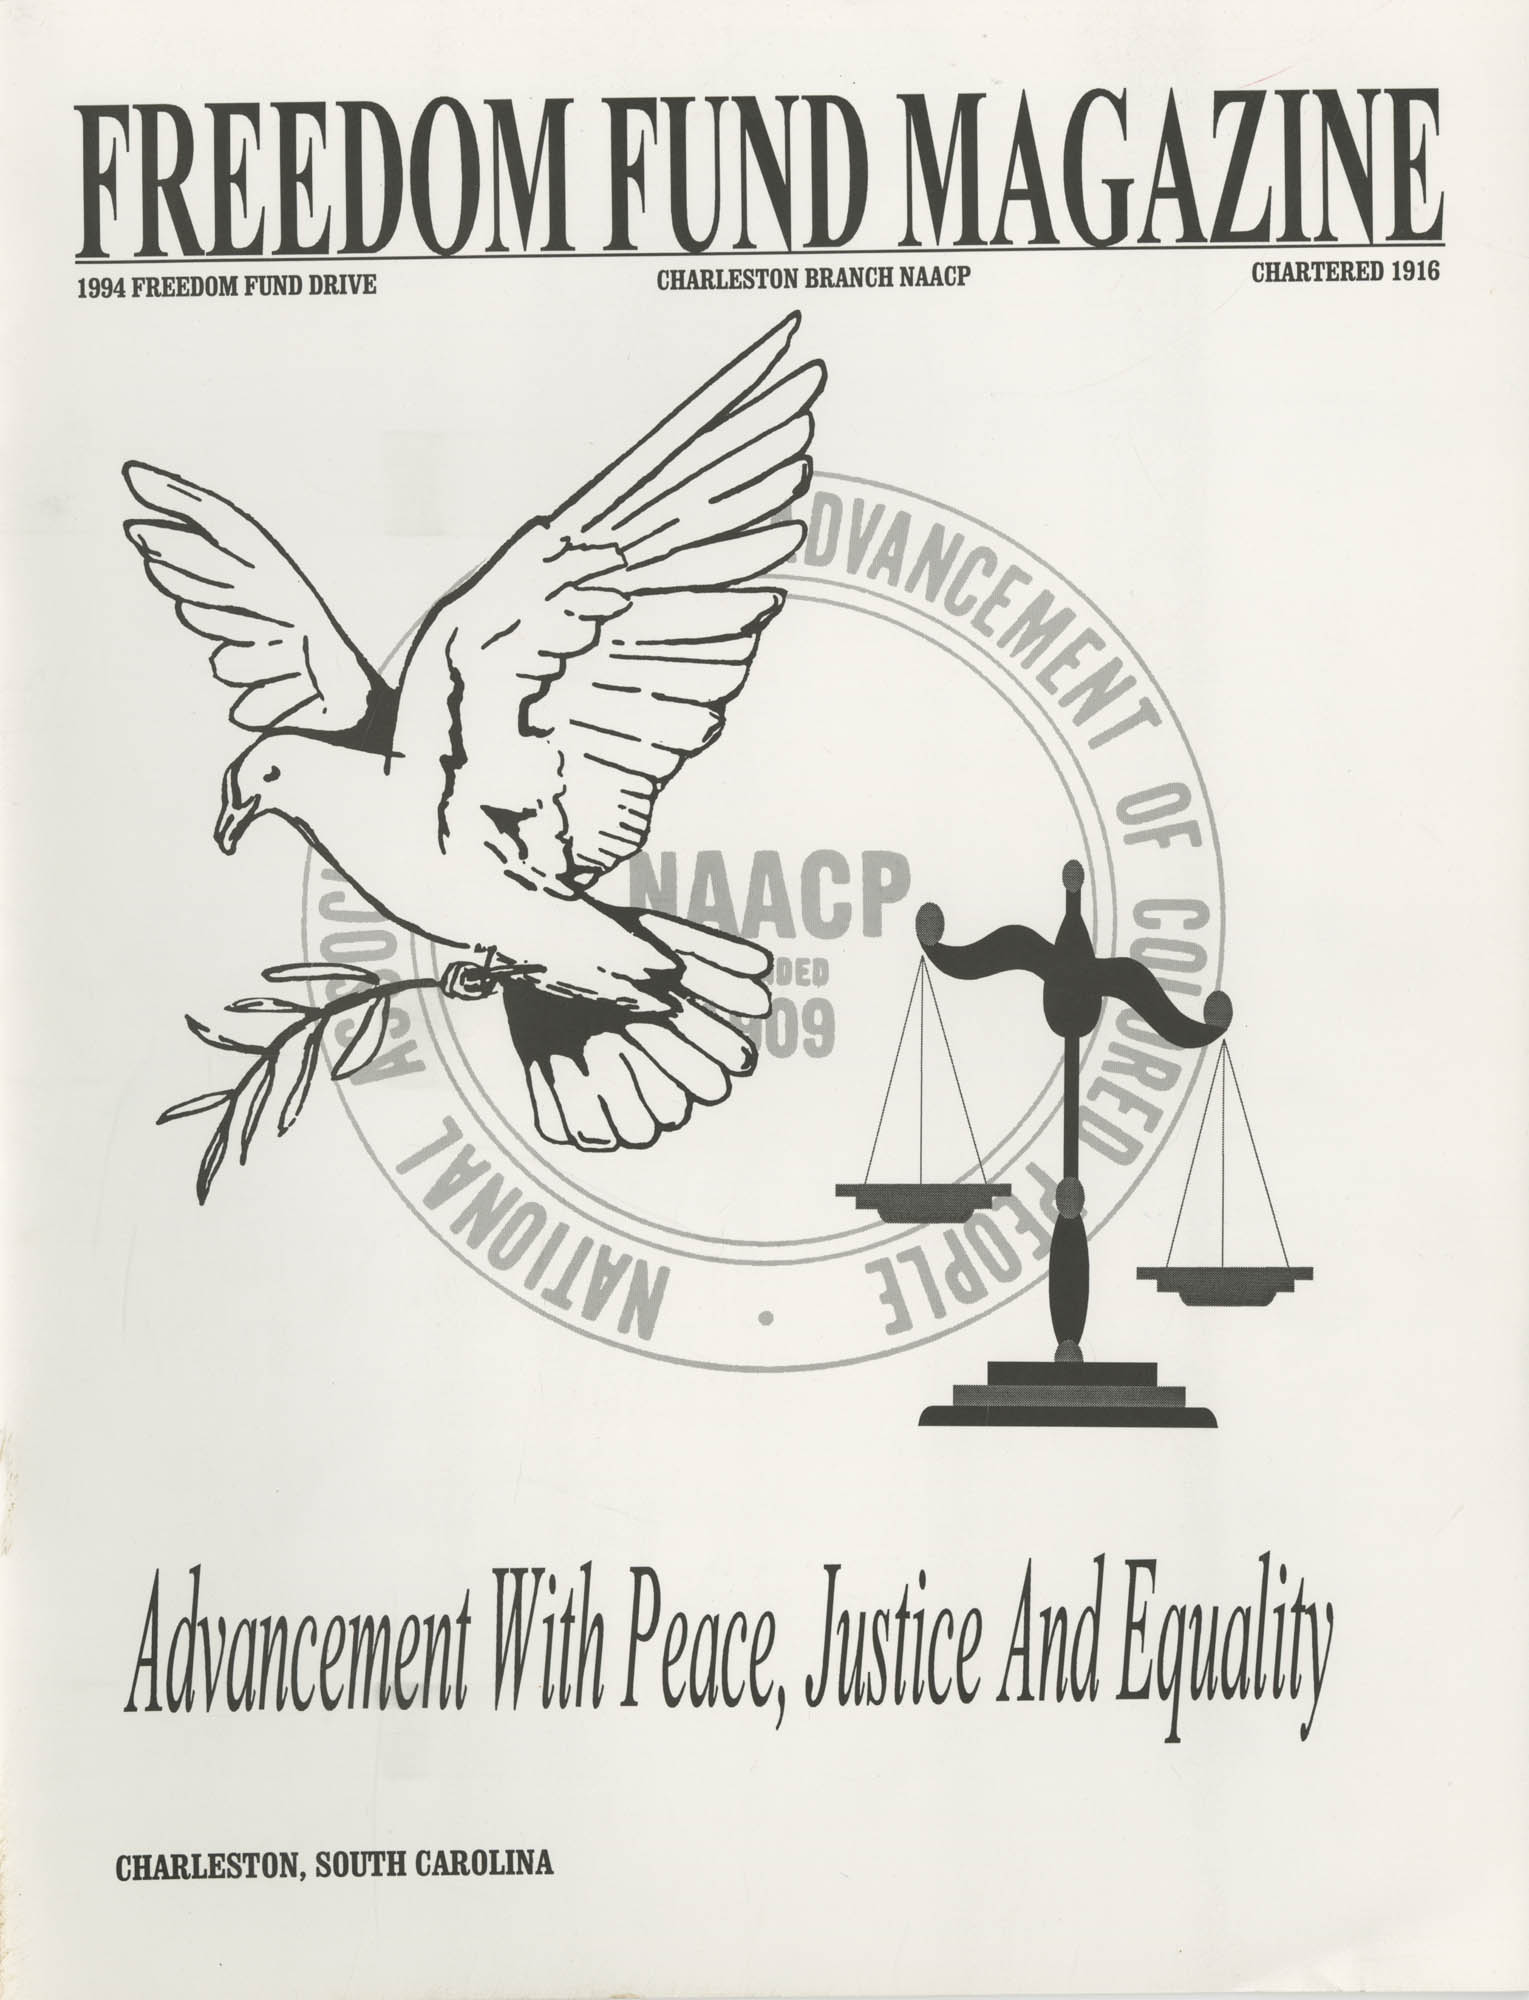 Freedom Fund Magazine, 1994, Front Cover Exterior